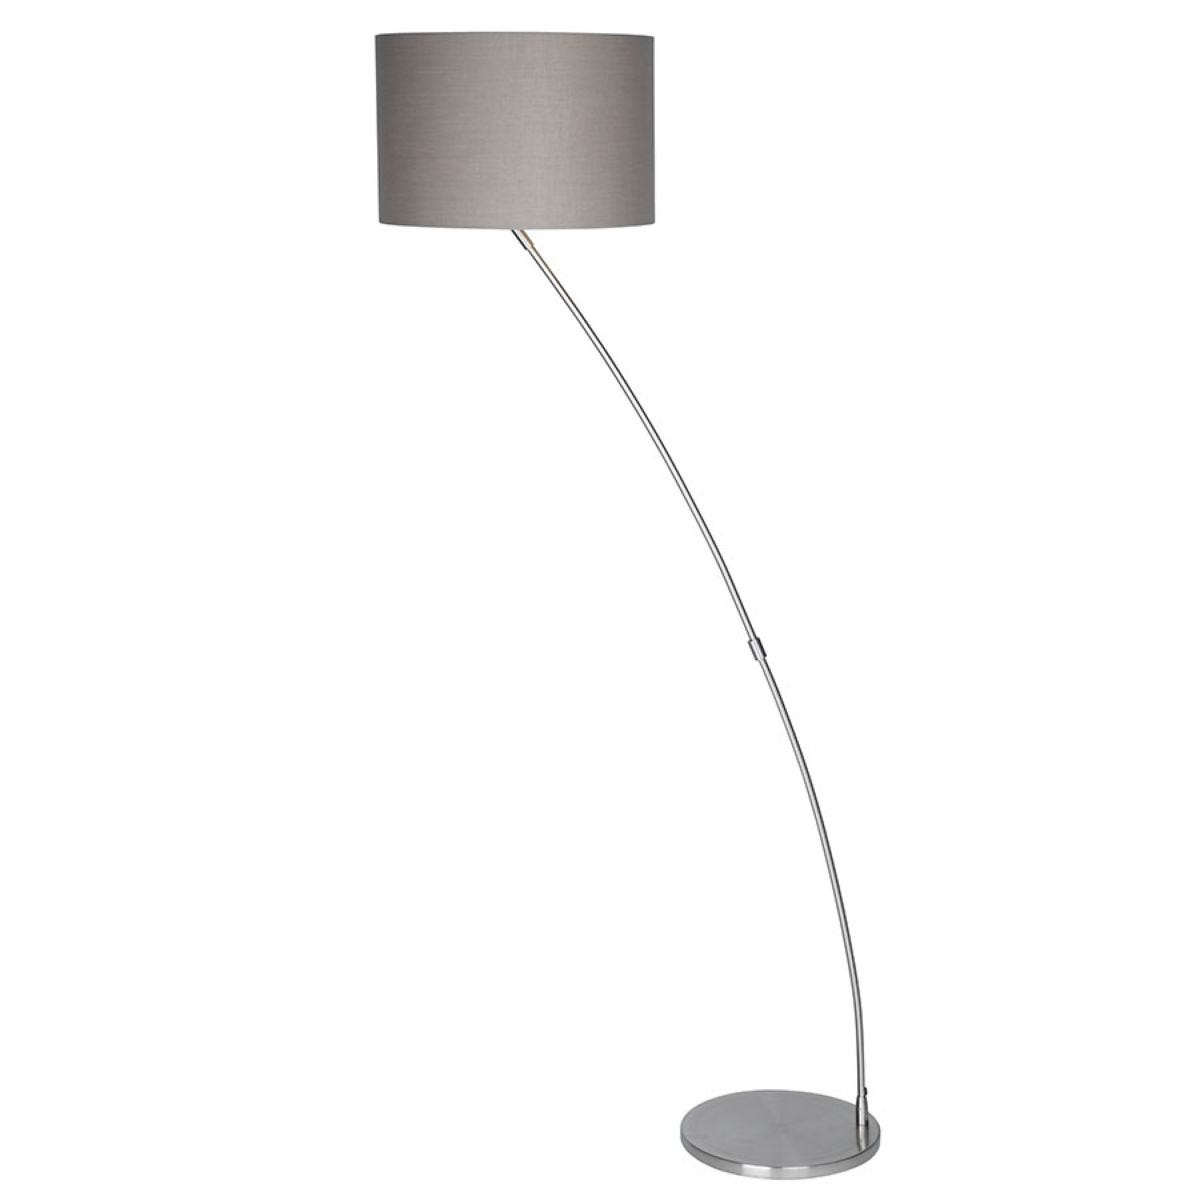 Village At Home Curve Floor Lamp - Chrome